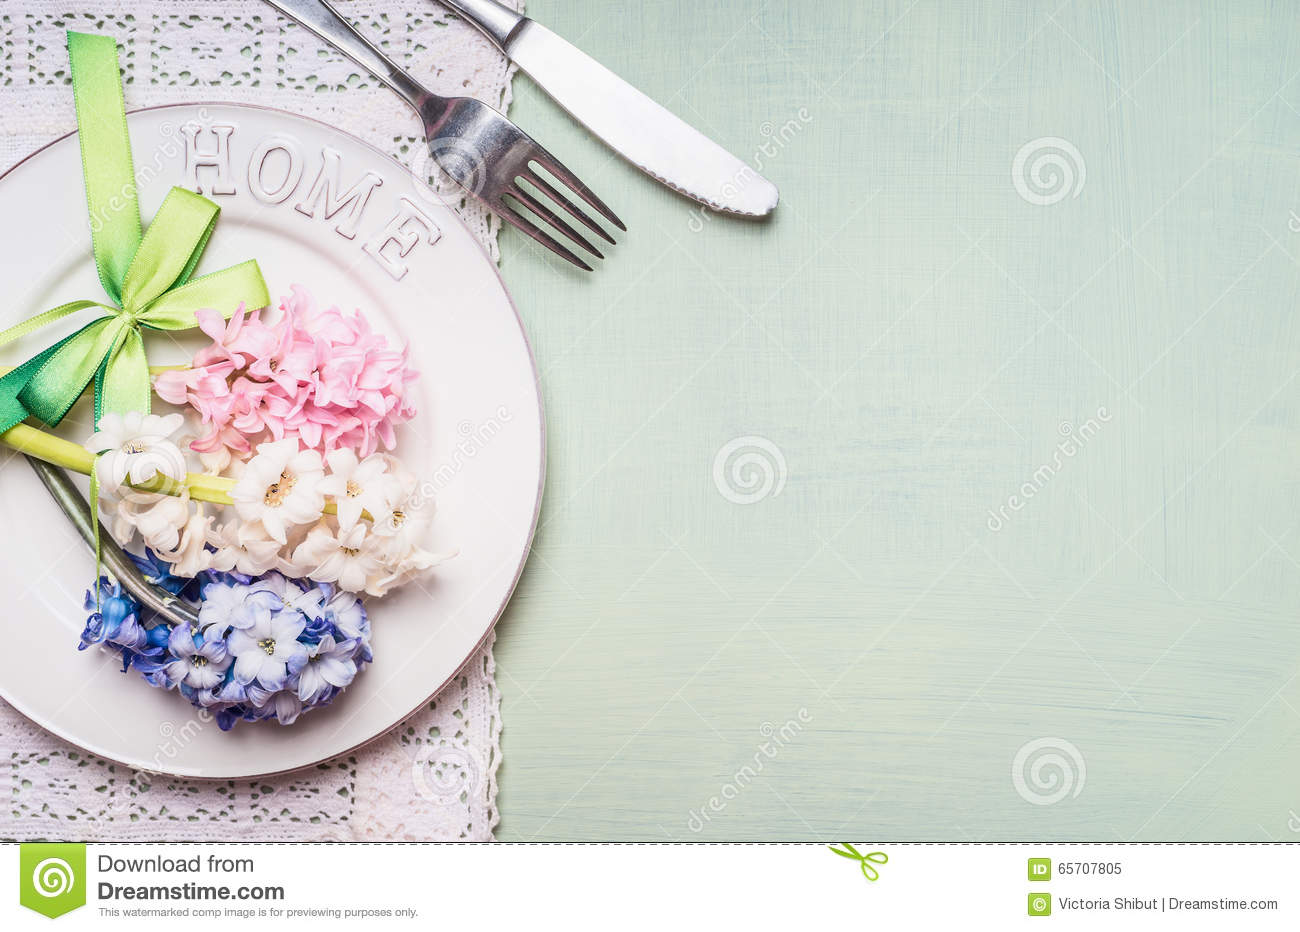 Festive table place setting with hyacinths flowers decoration, plate, fork and knife on light green background, top view